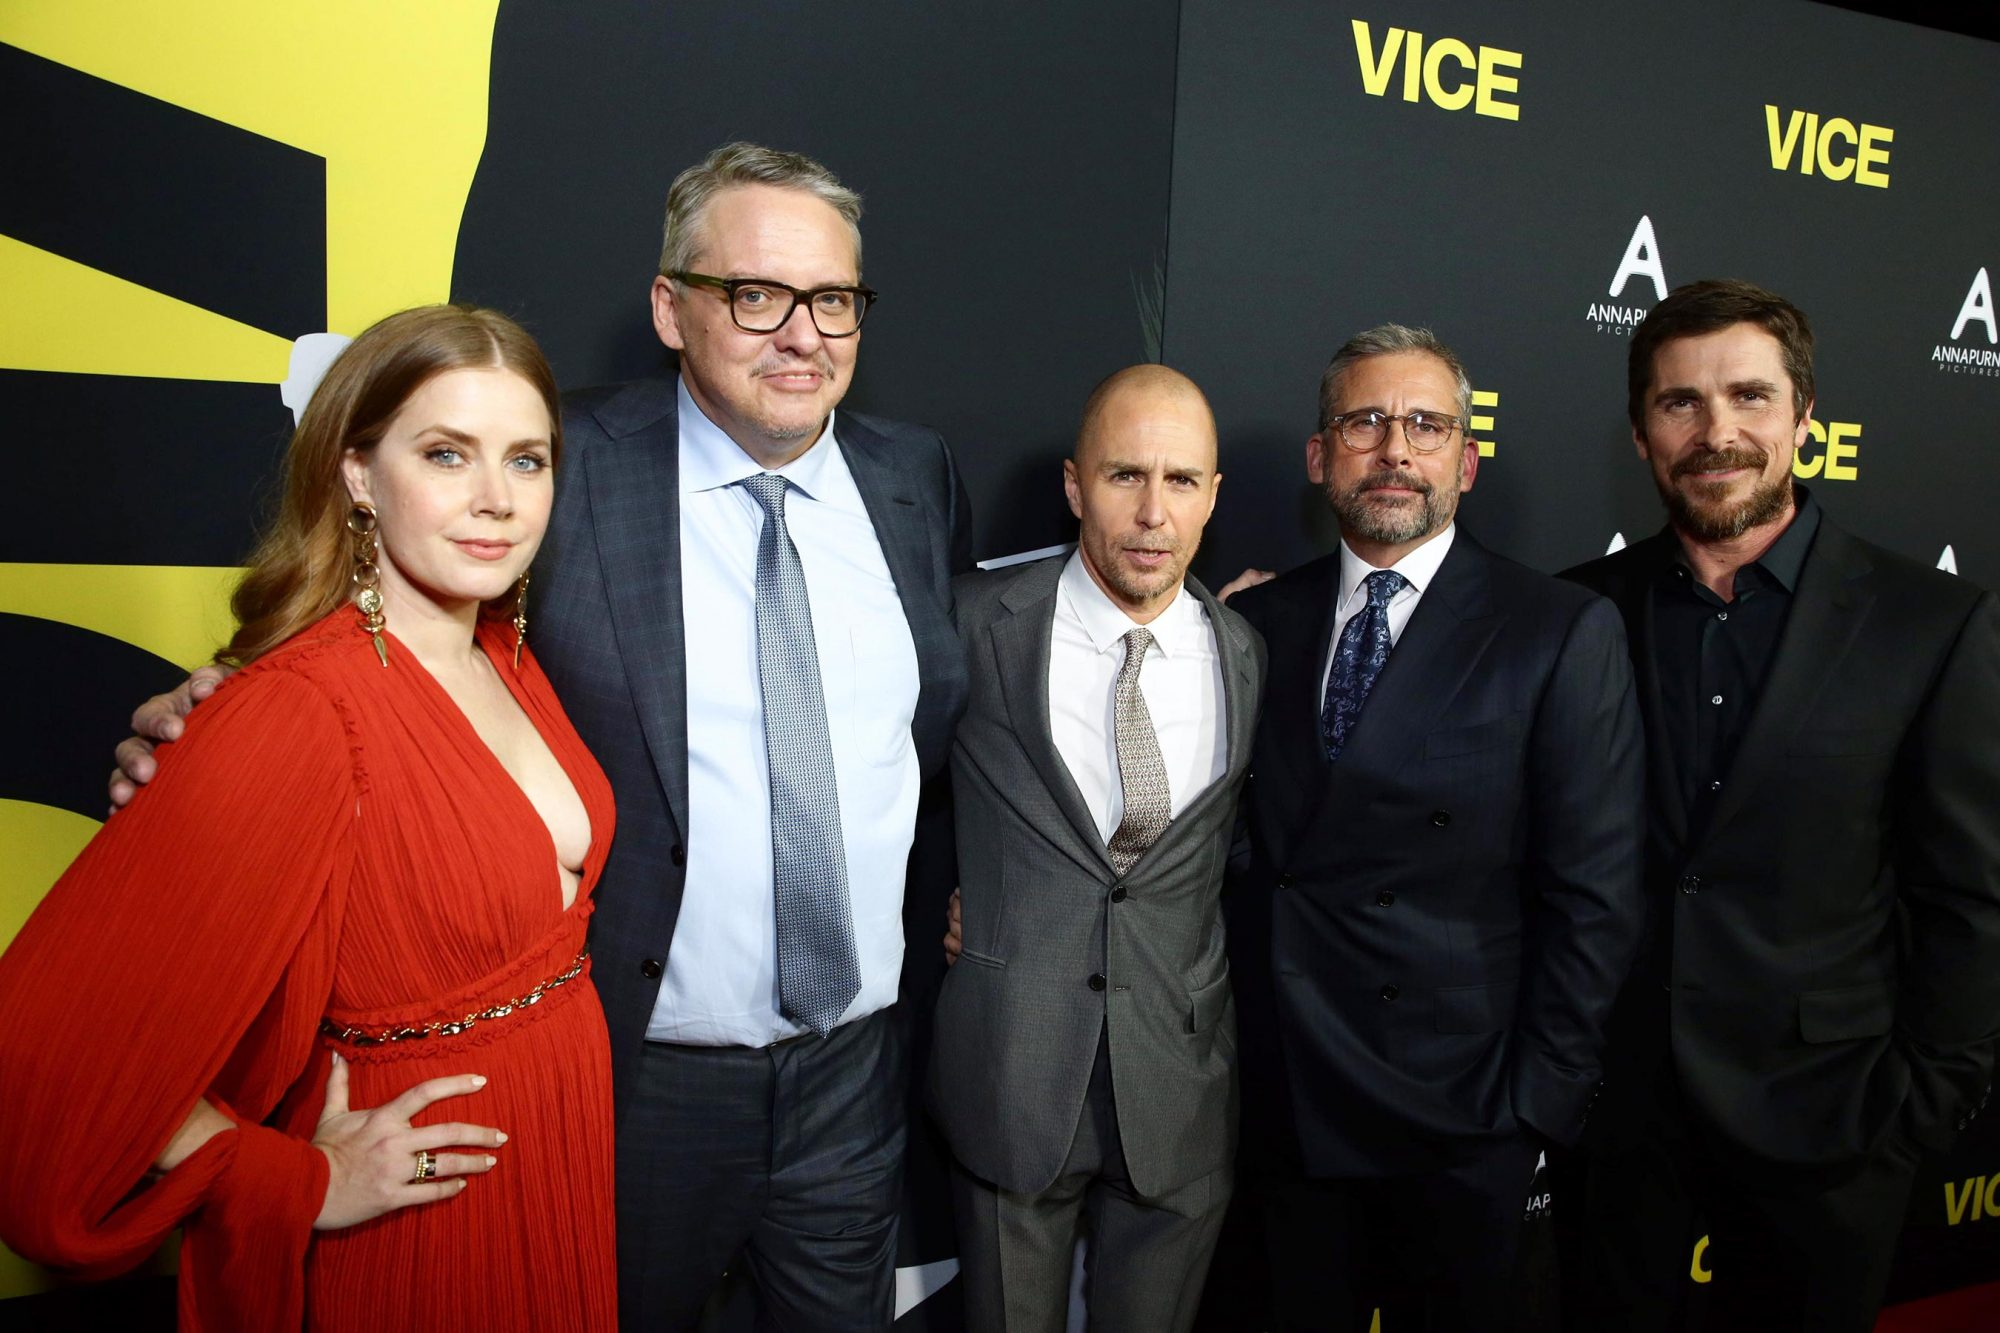 'Vice' film premiere, Arrivals, Los Angeles, USA - 11 Dec 2018